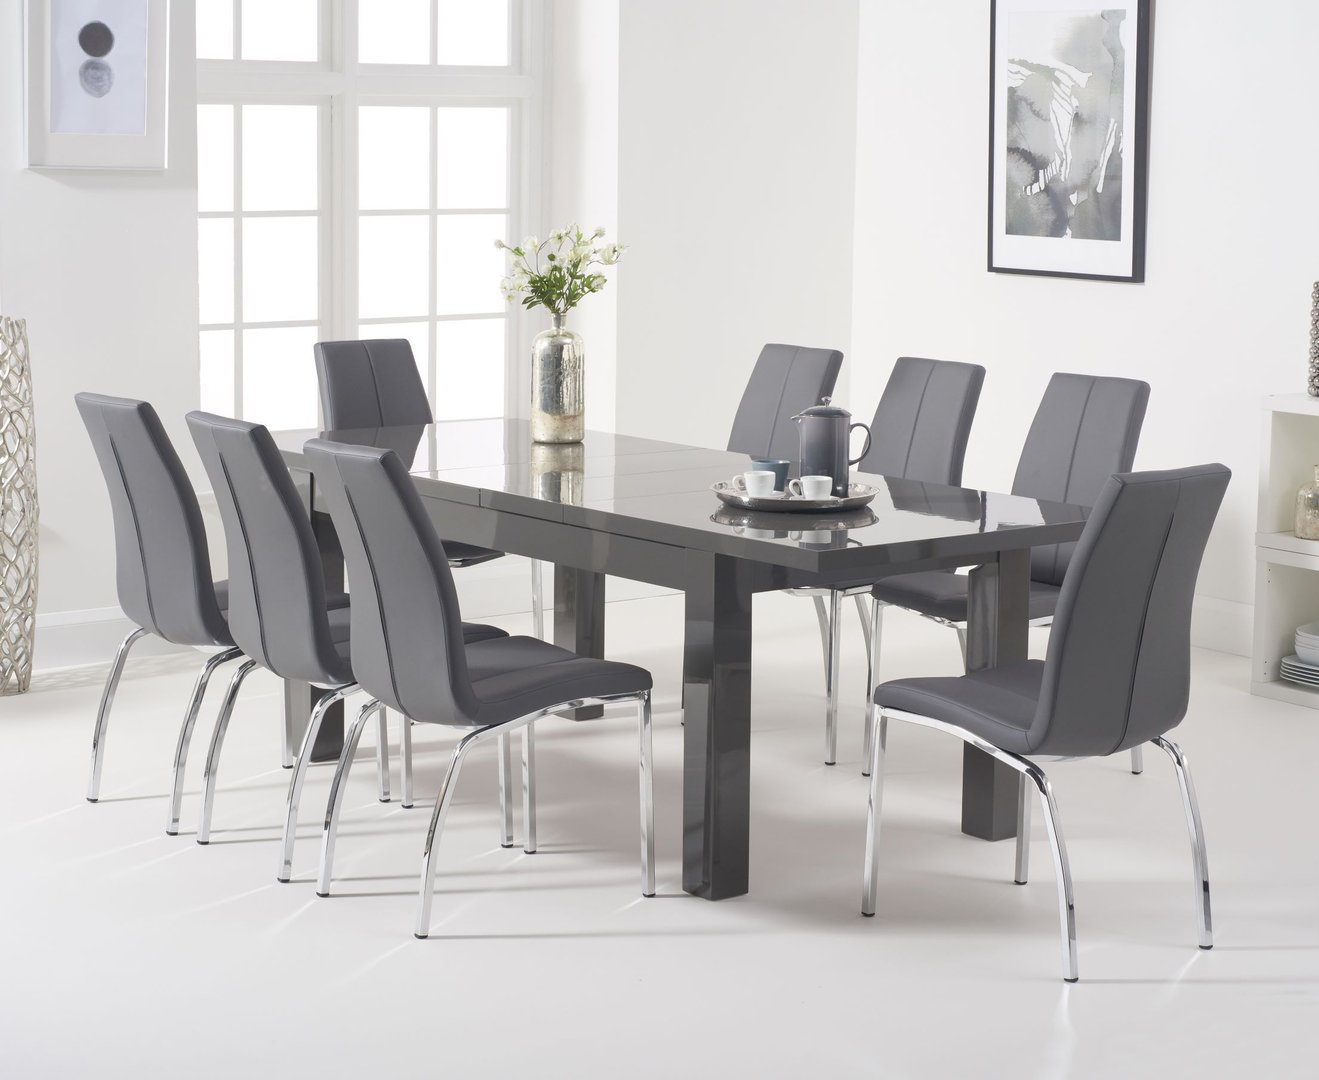 8 Seater Dark Grey High Gloss Dining Table Chairs Homegenies